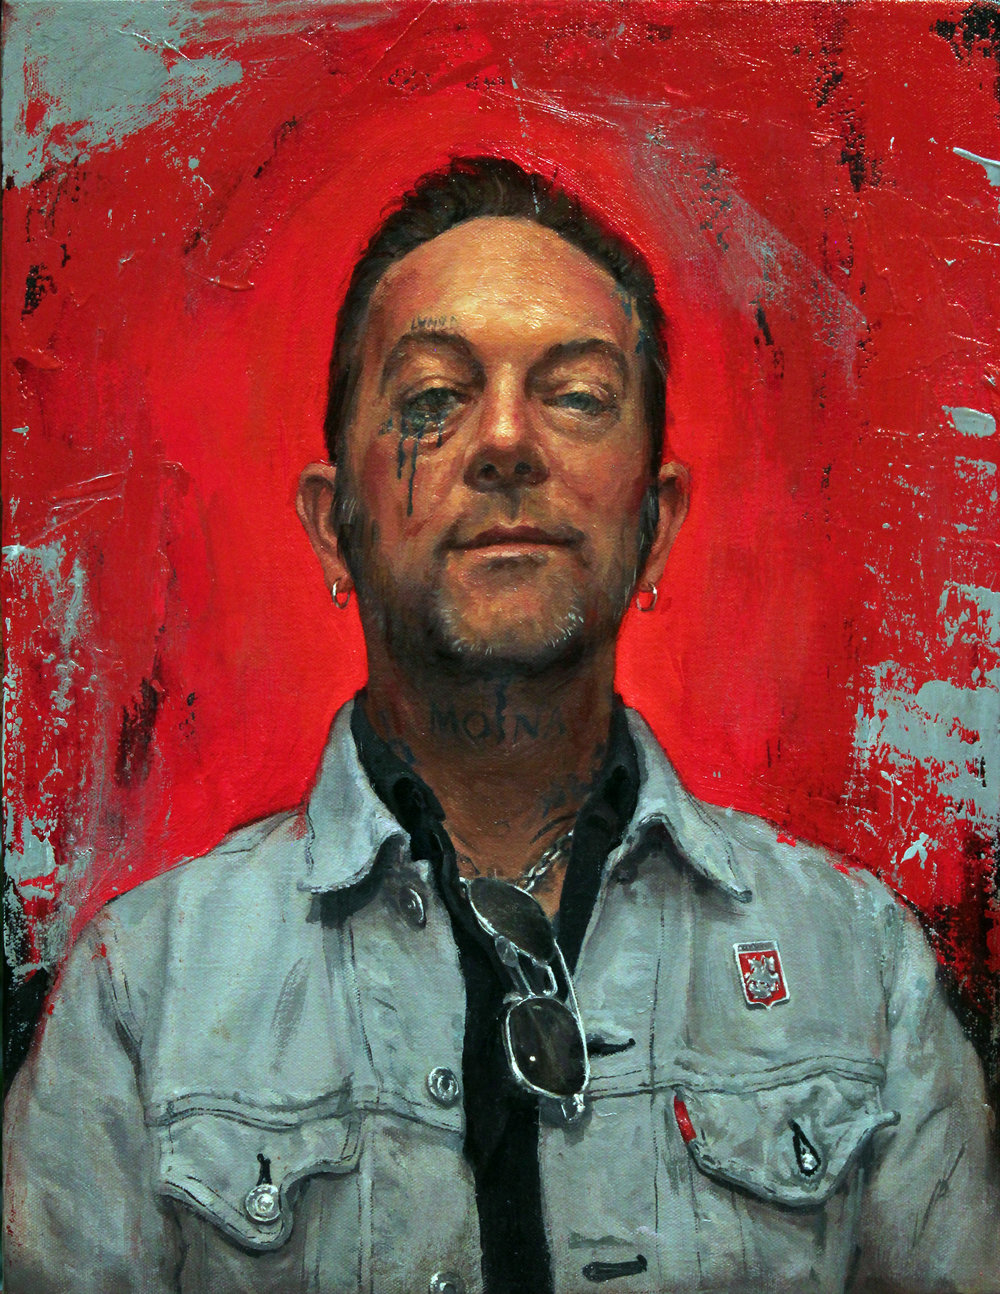 "'Portrait of the Artist, Chris Conn', oil on panel, 18"" x 14"", 2016"